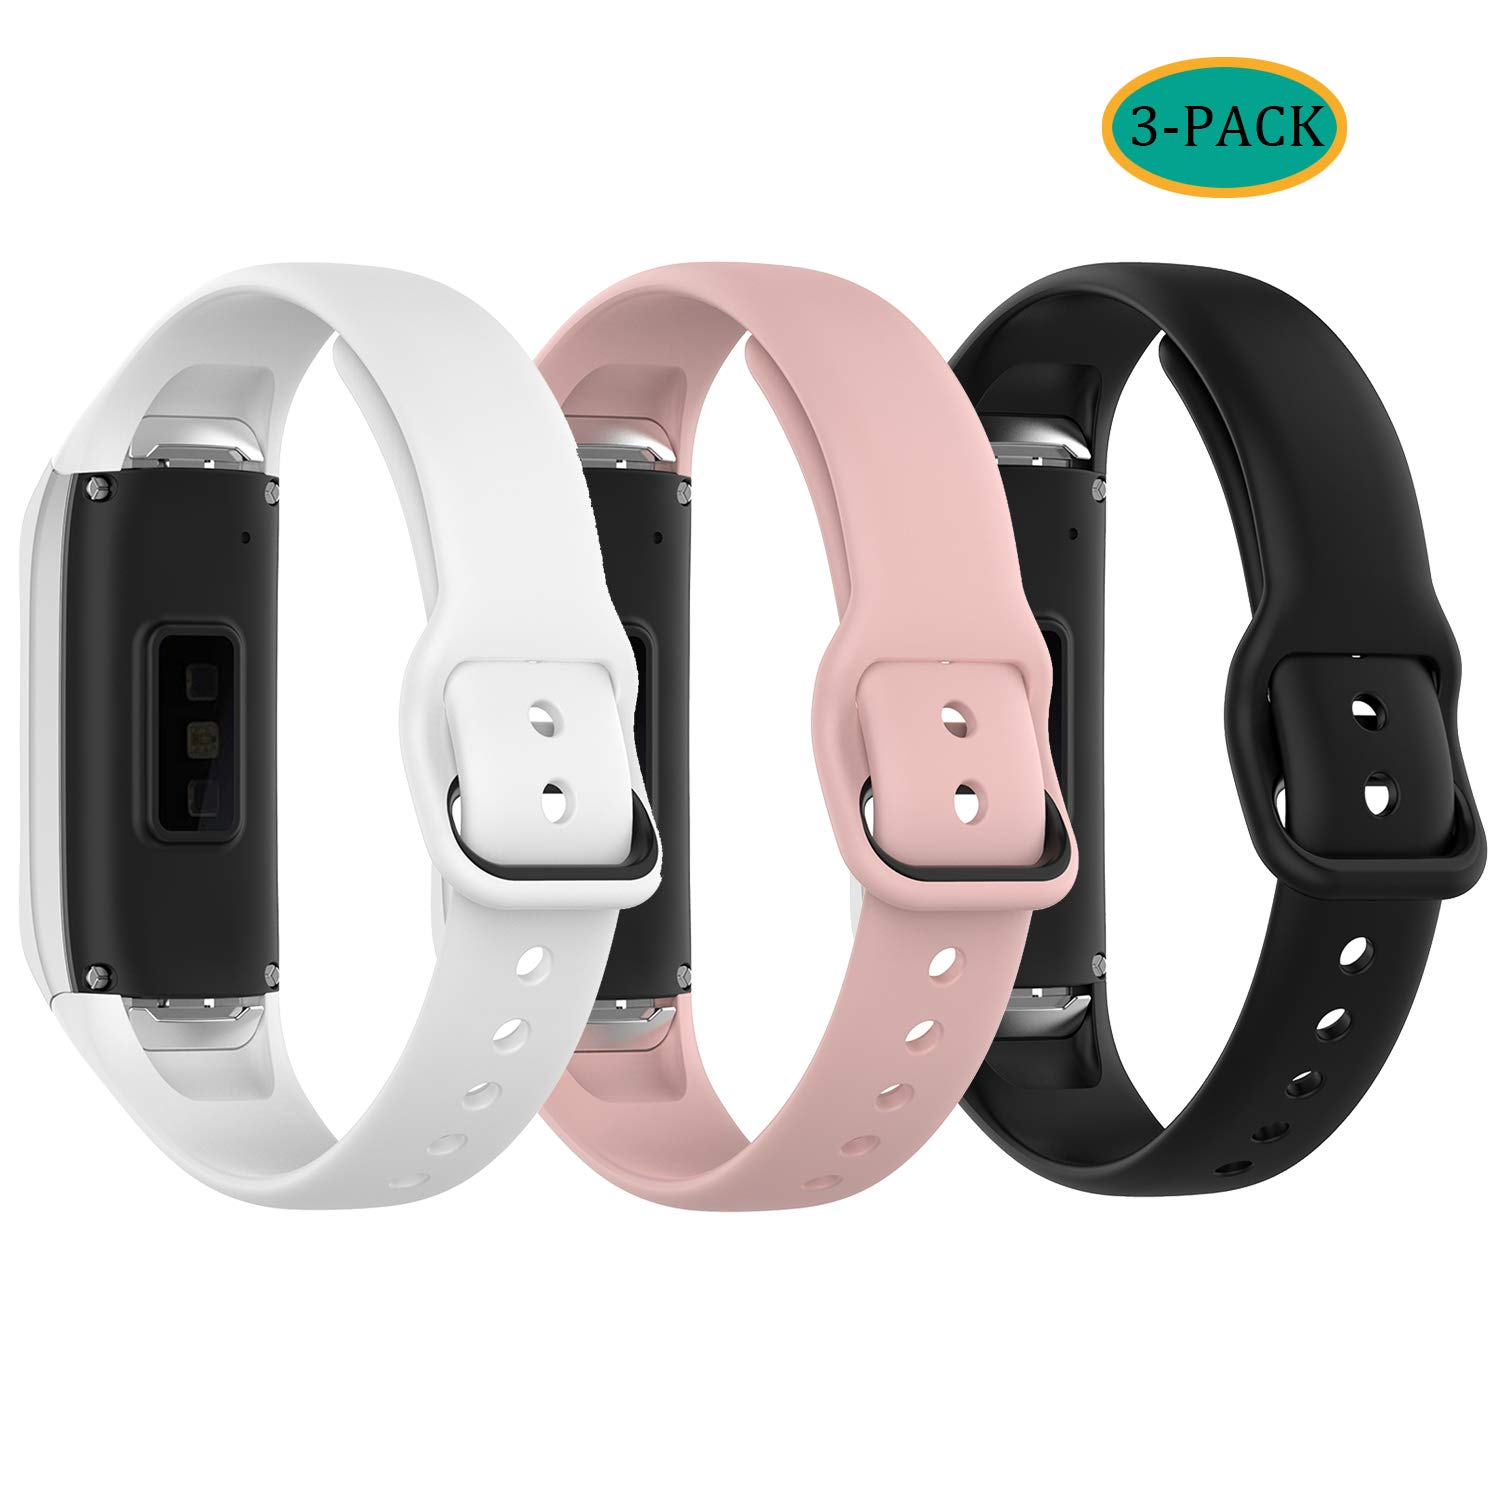 Amazon.com: Fit for Samsung Galaxy Fit SM-R370 Bands ...